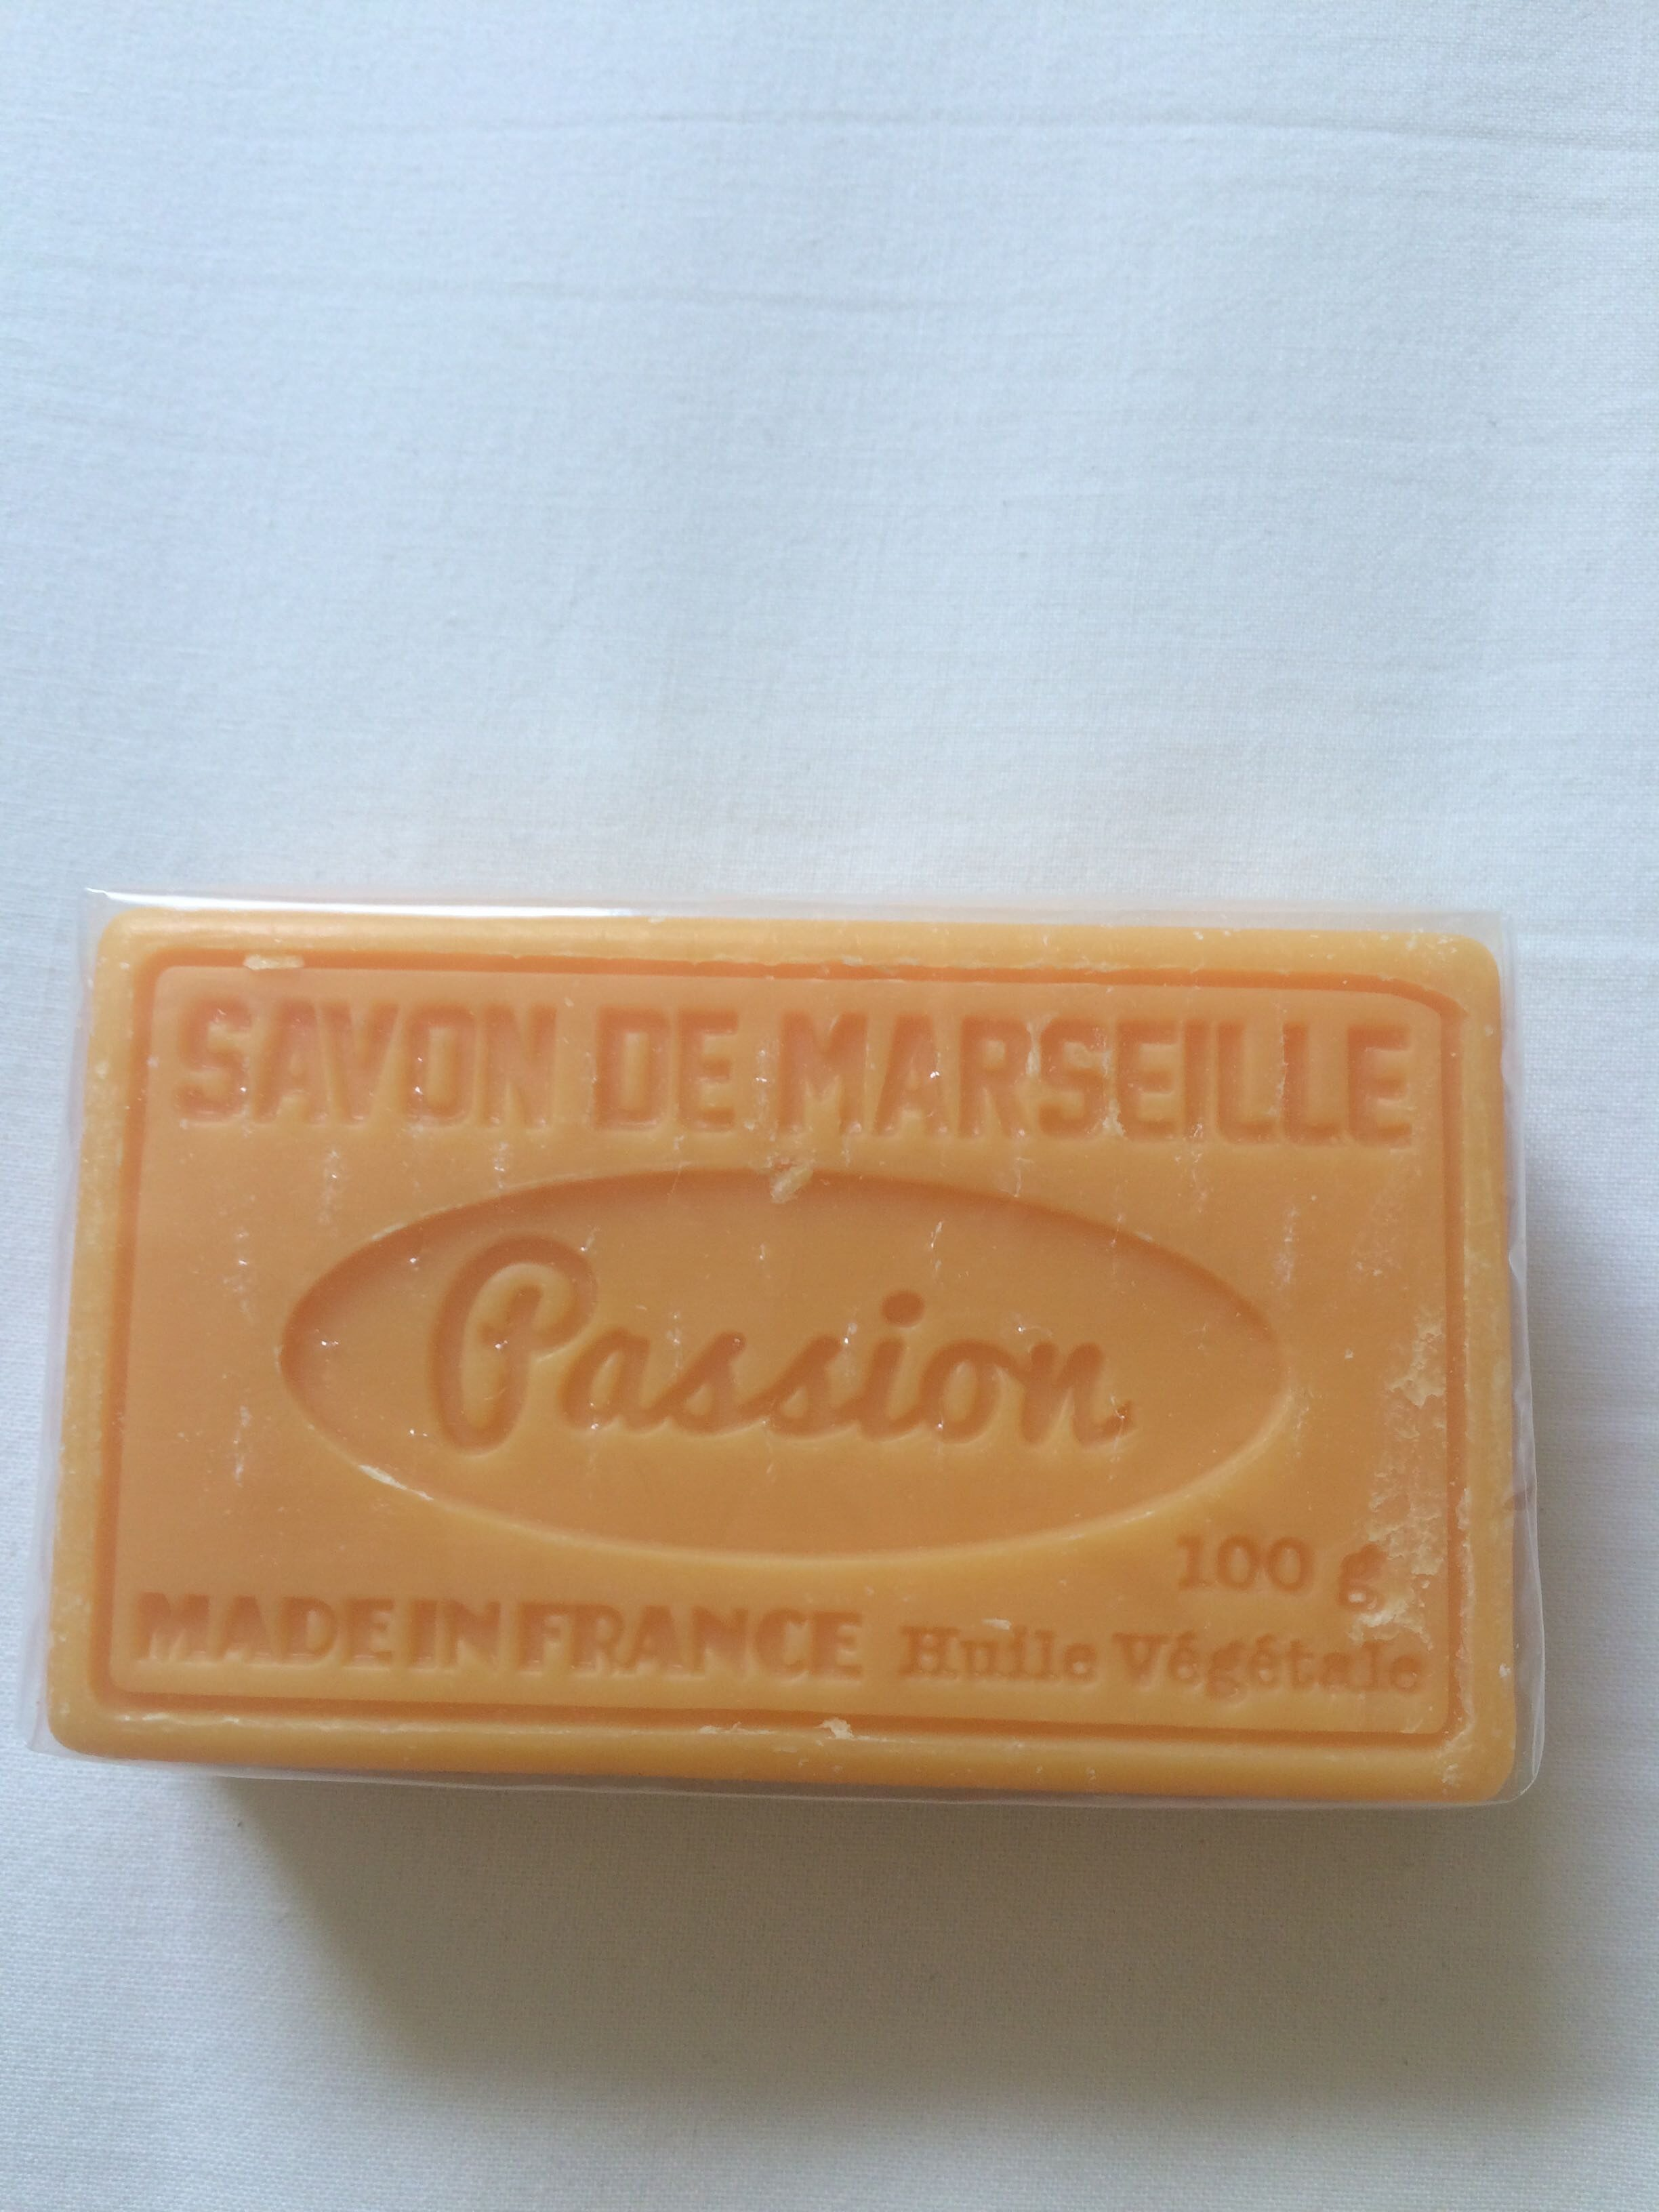 Savon de Marseille Passion - Product - fr